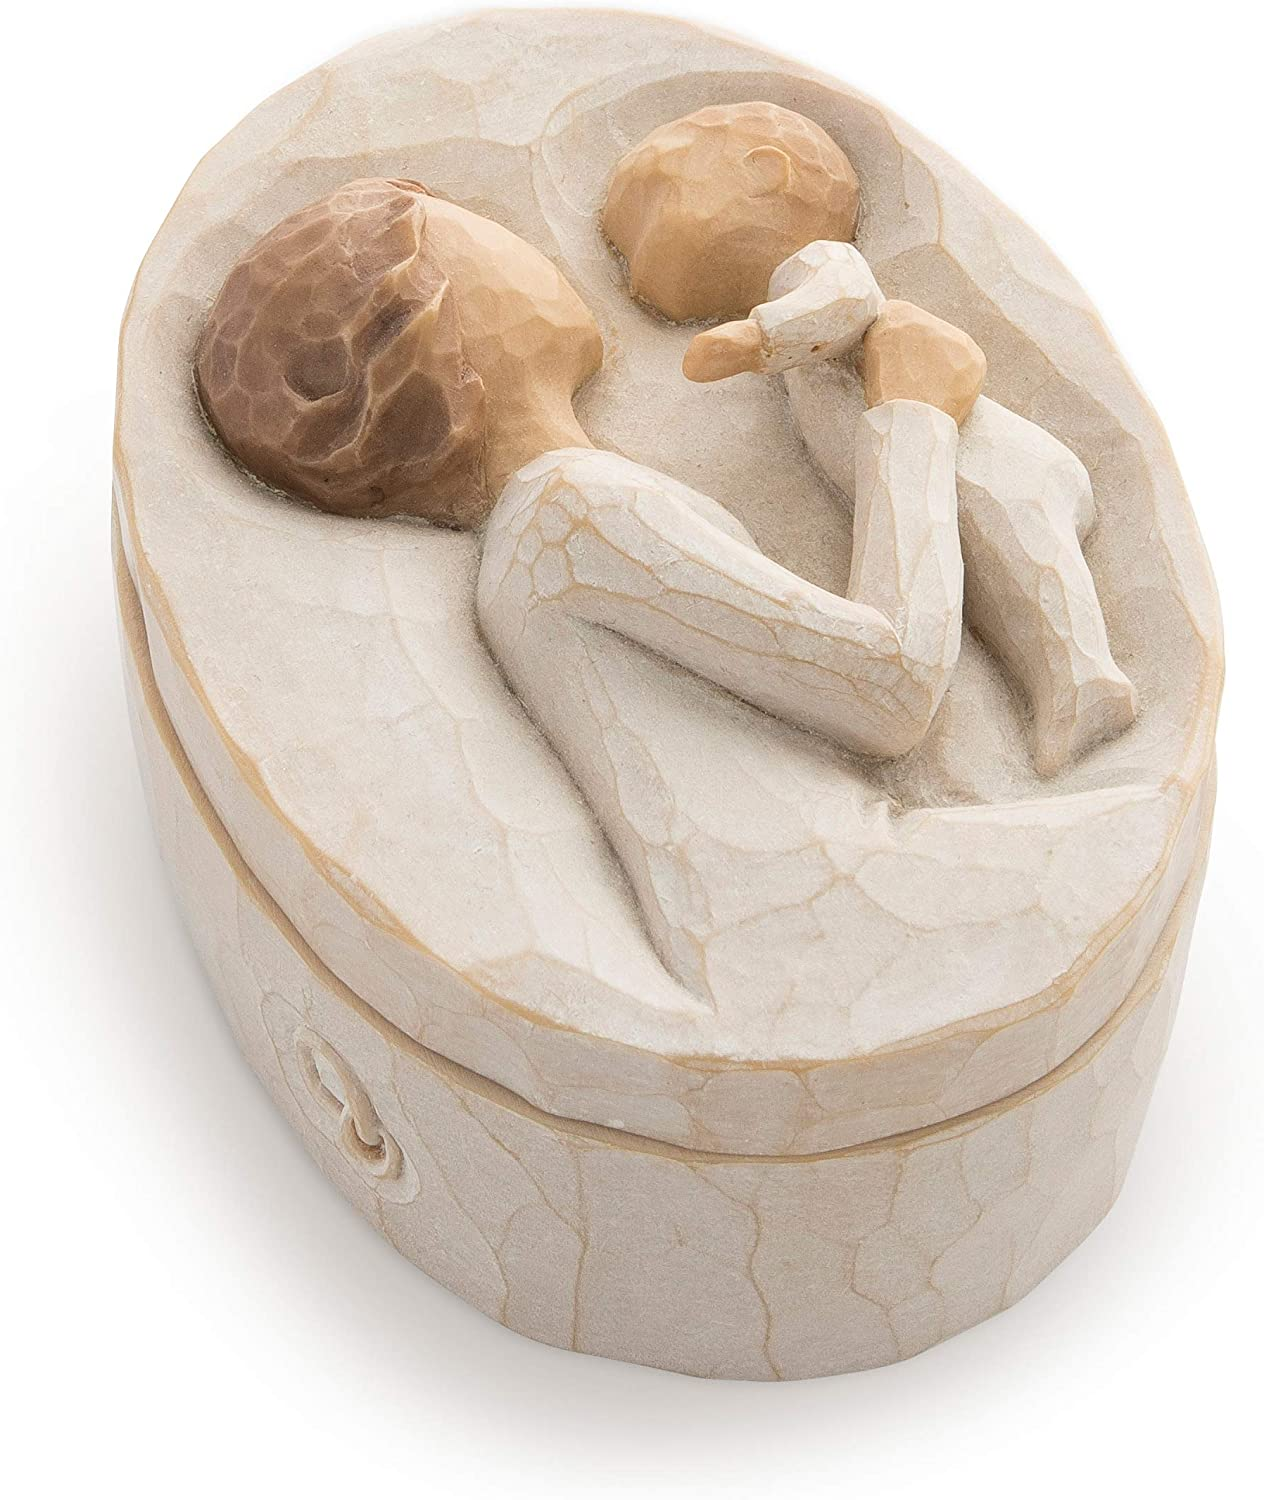 Willow Tree Fashionable Grandmother Sculpted Hand-Painted Box Keepsake Outstanding